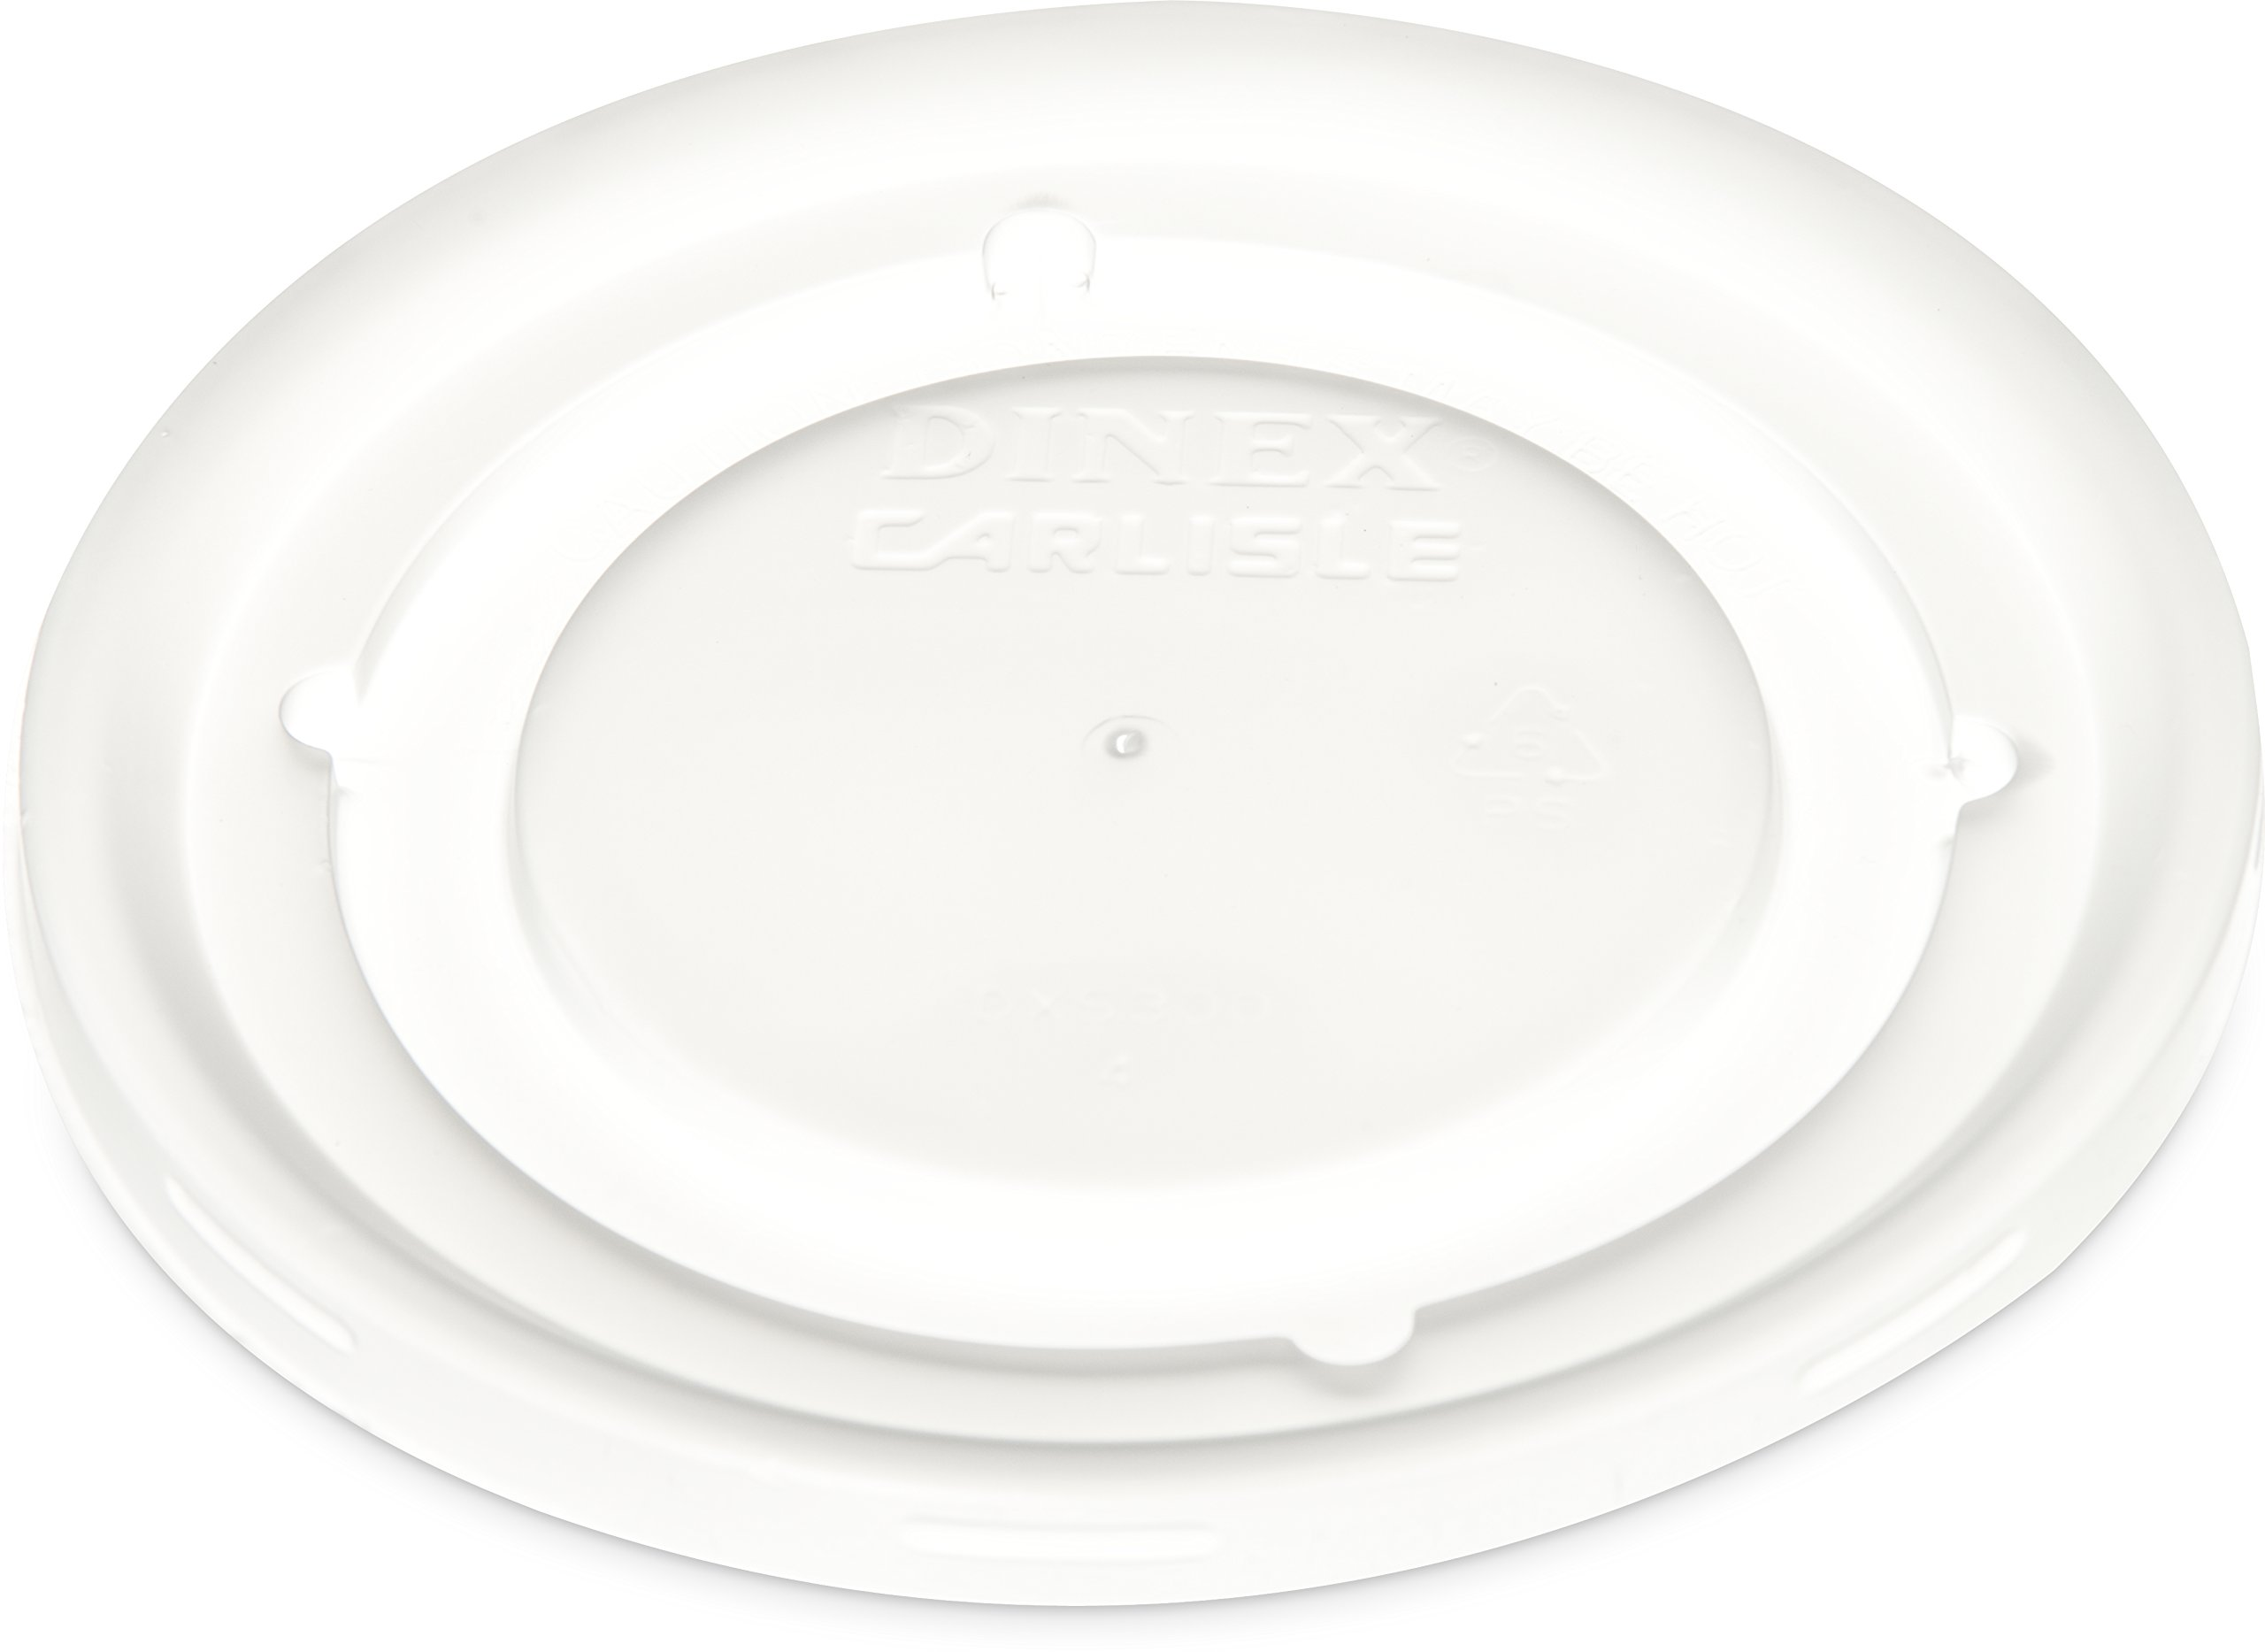 Dinex DX53008714 Polystyrene Disposable Lid, Translucent, 4-1/2'' Diameter, For Fenwick 9oz Insulated Bowl (Case of 1000)